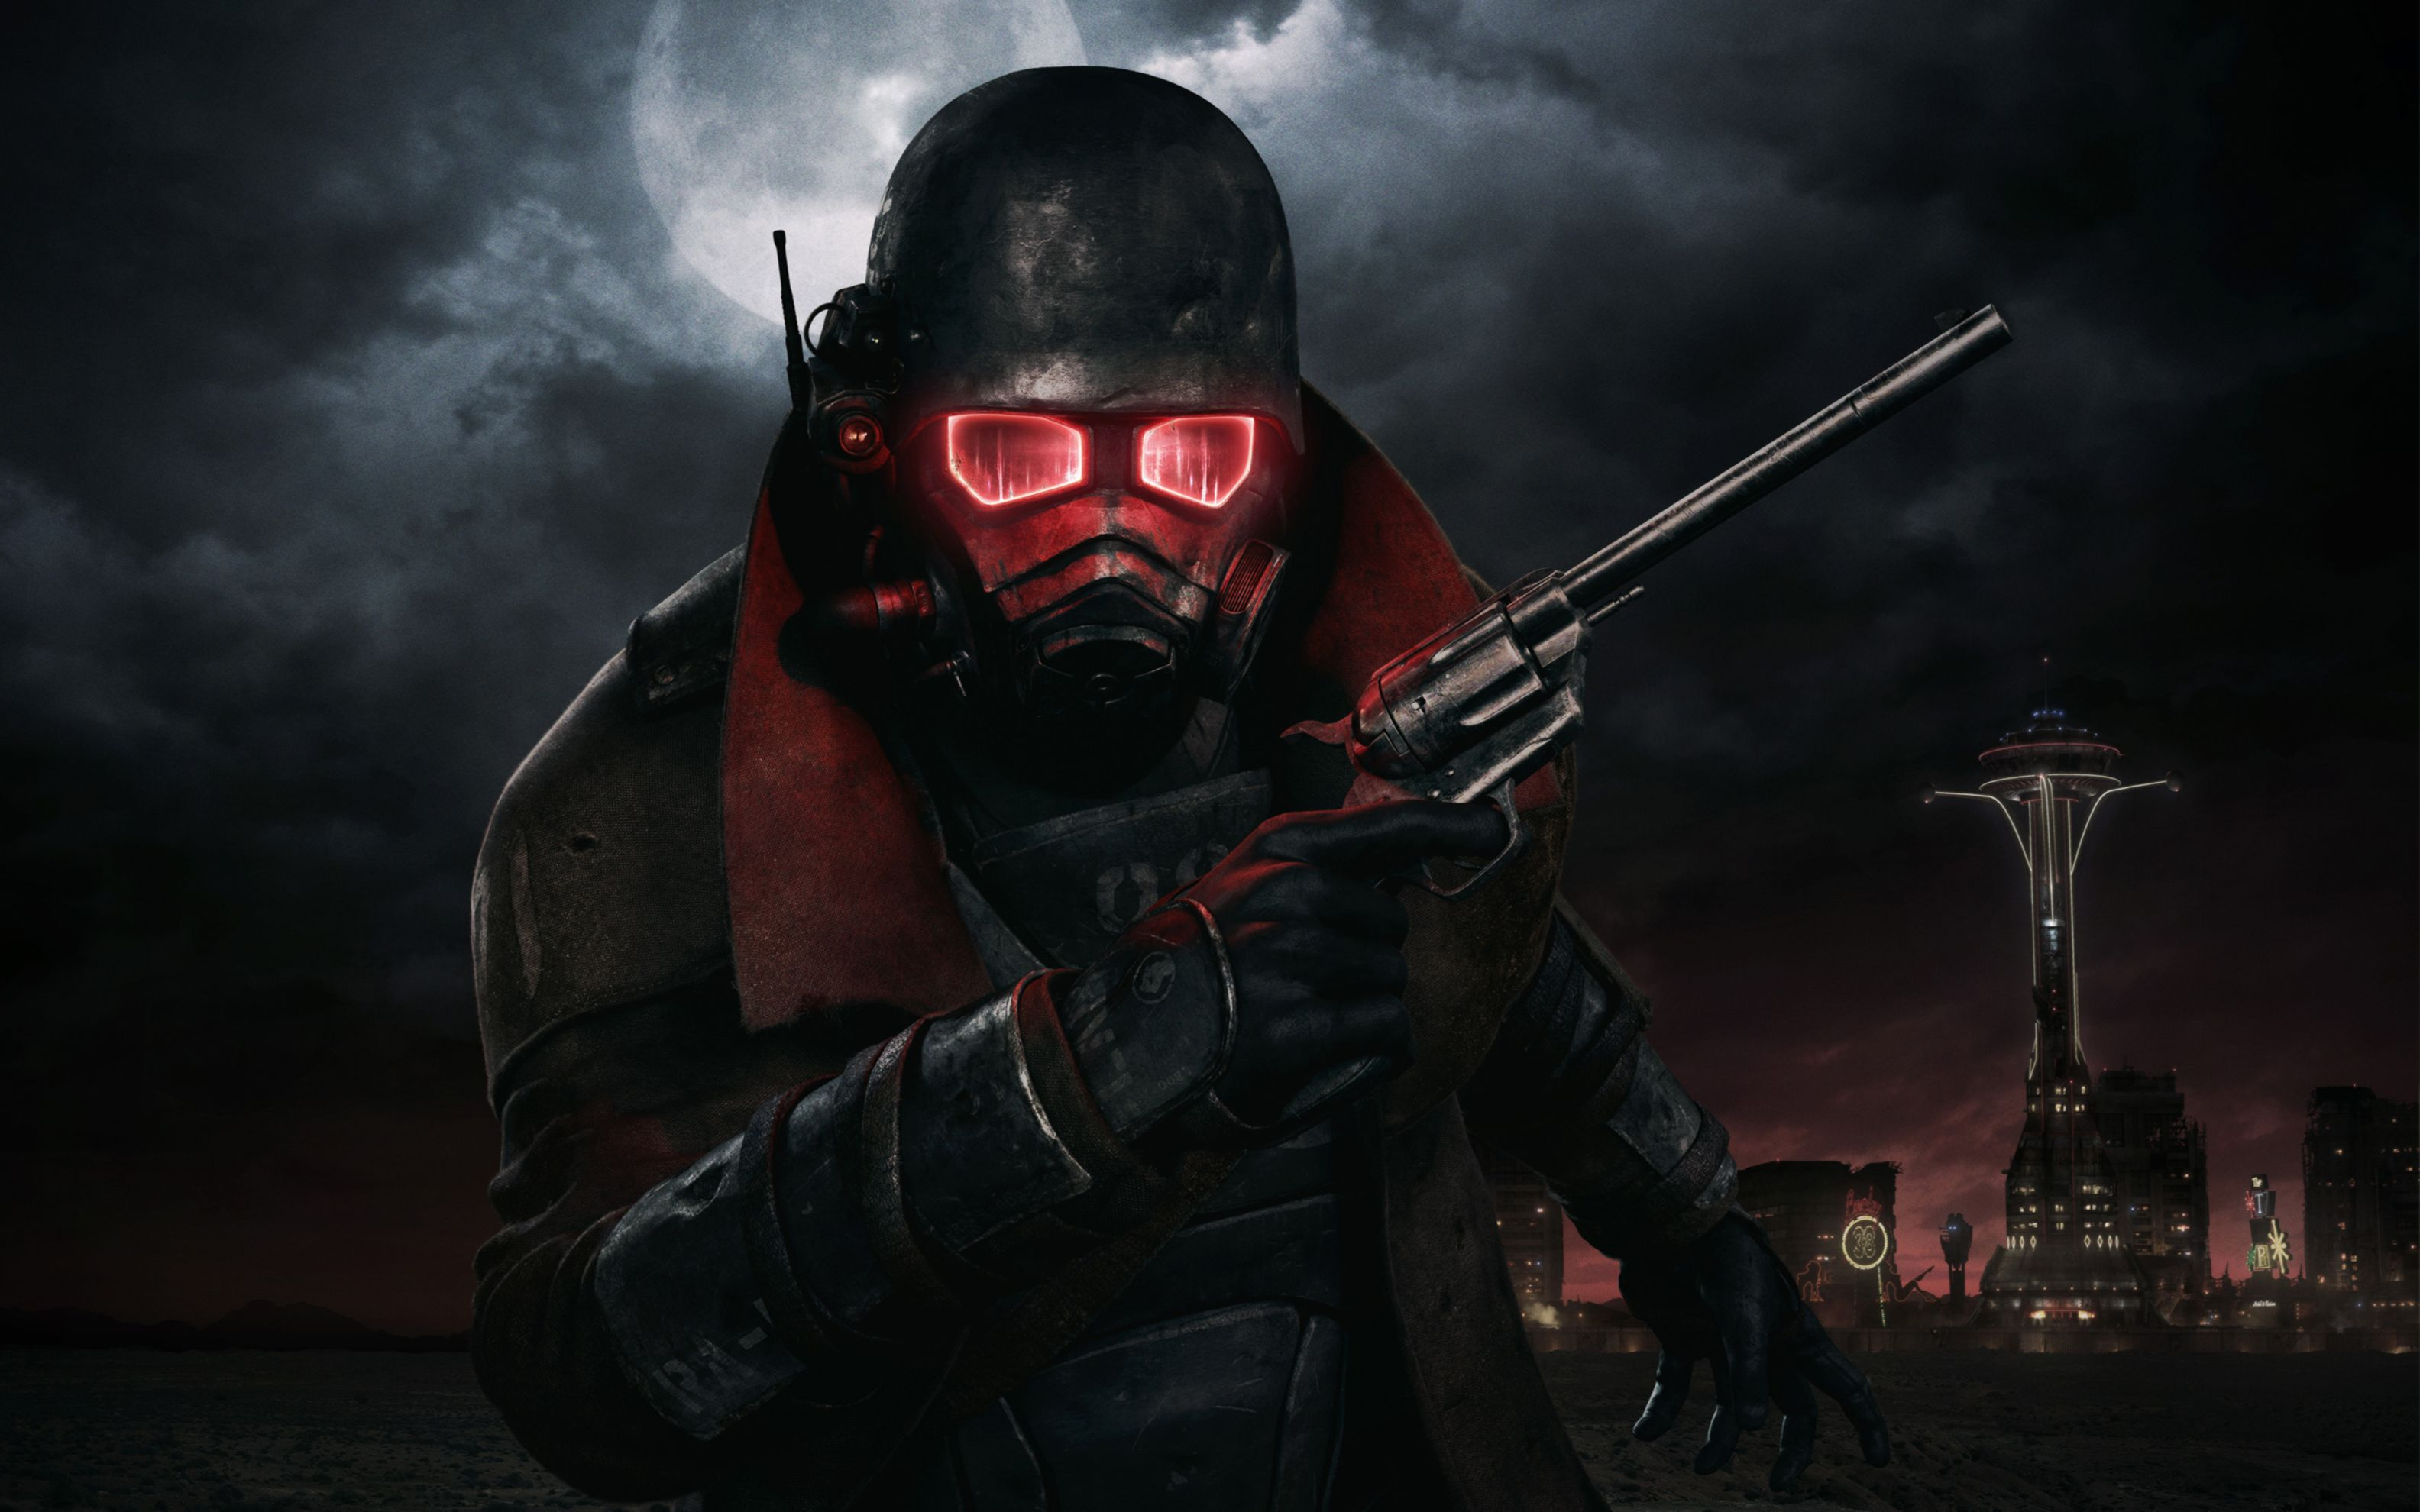 fallout new vegas game wide wallpaper: desktop hd wallpaper